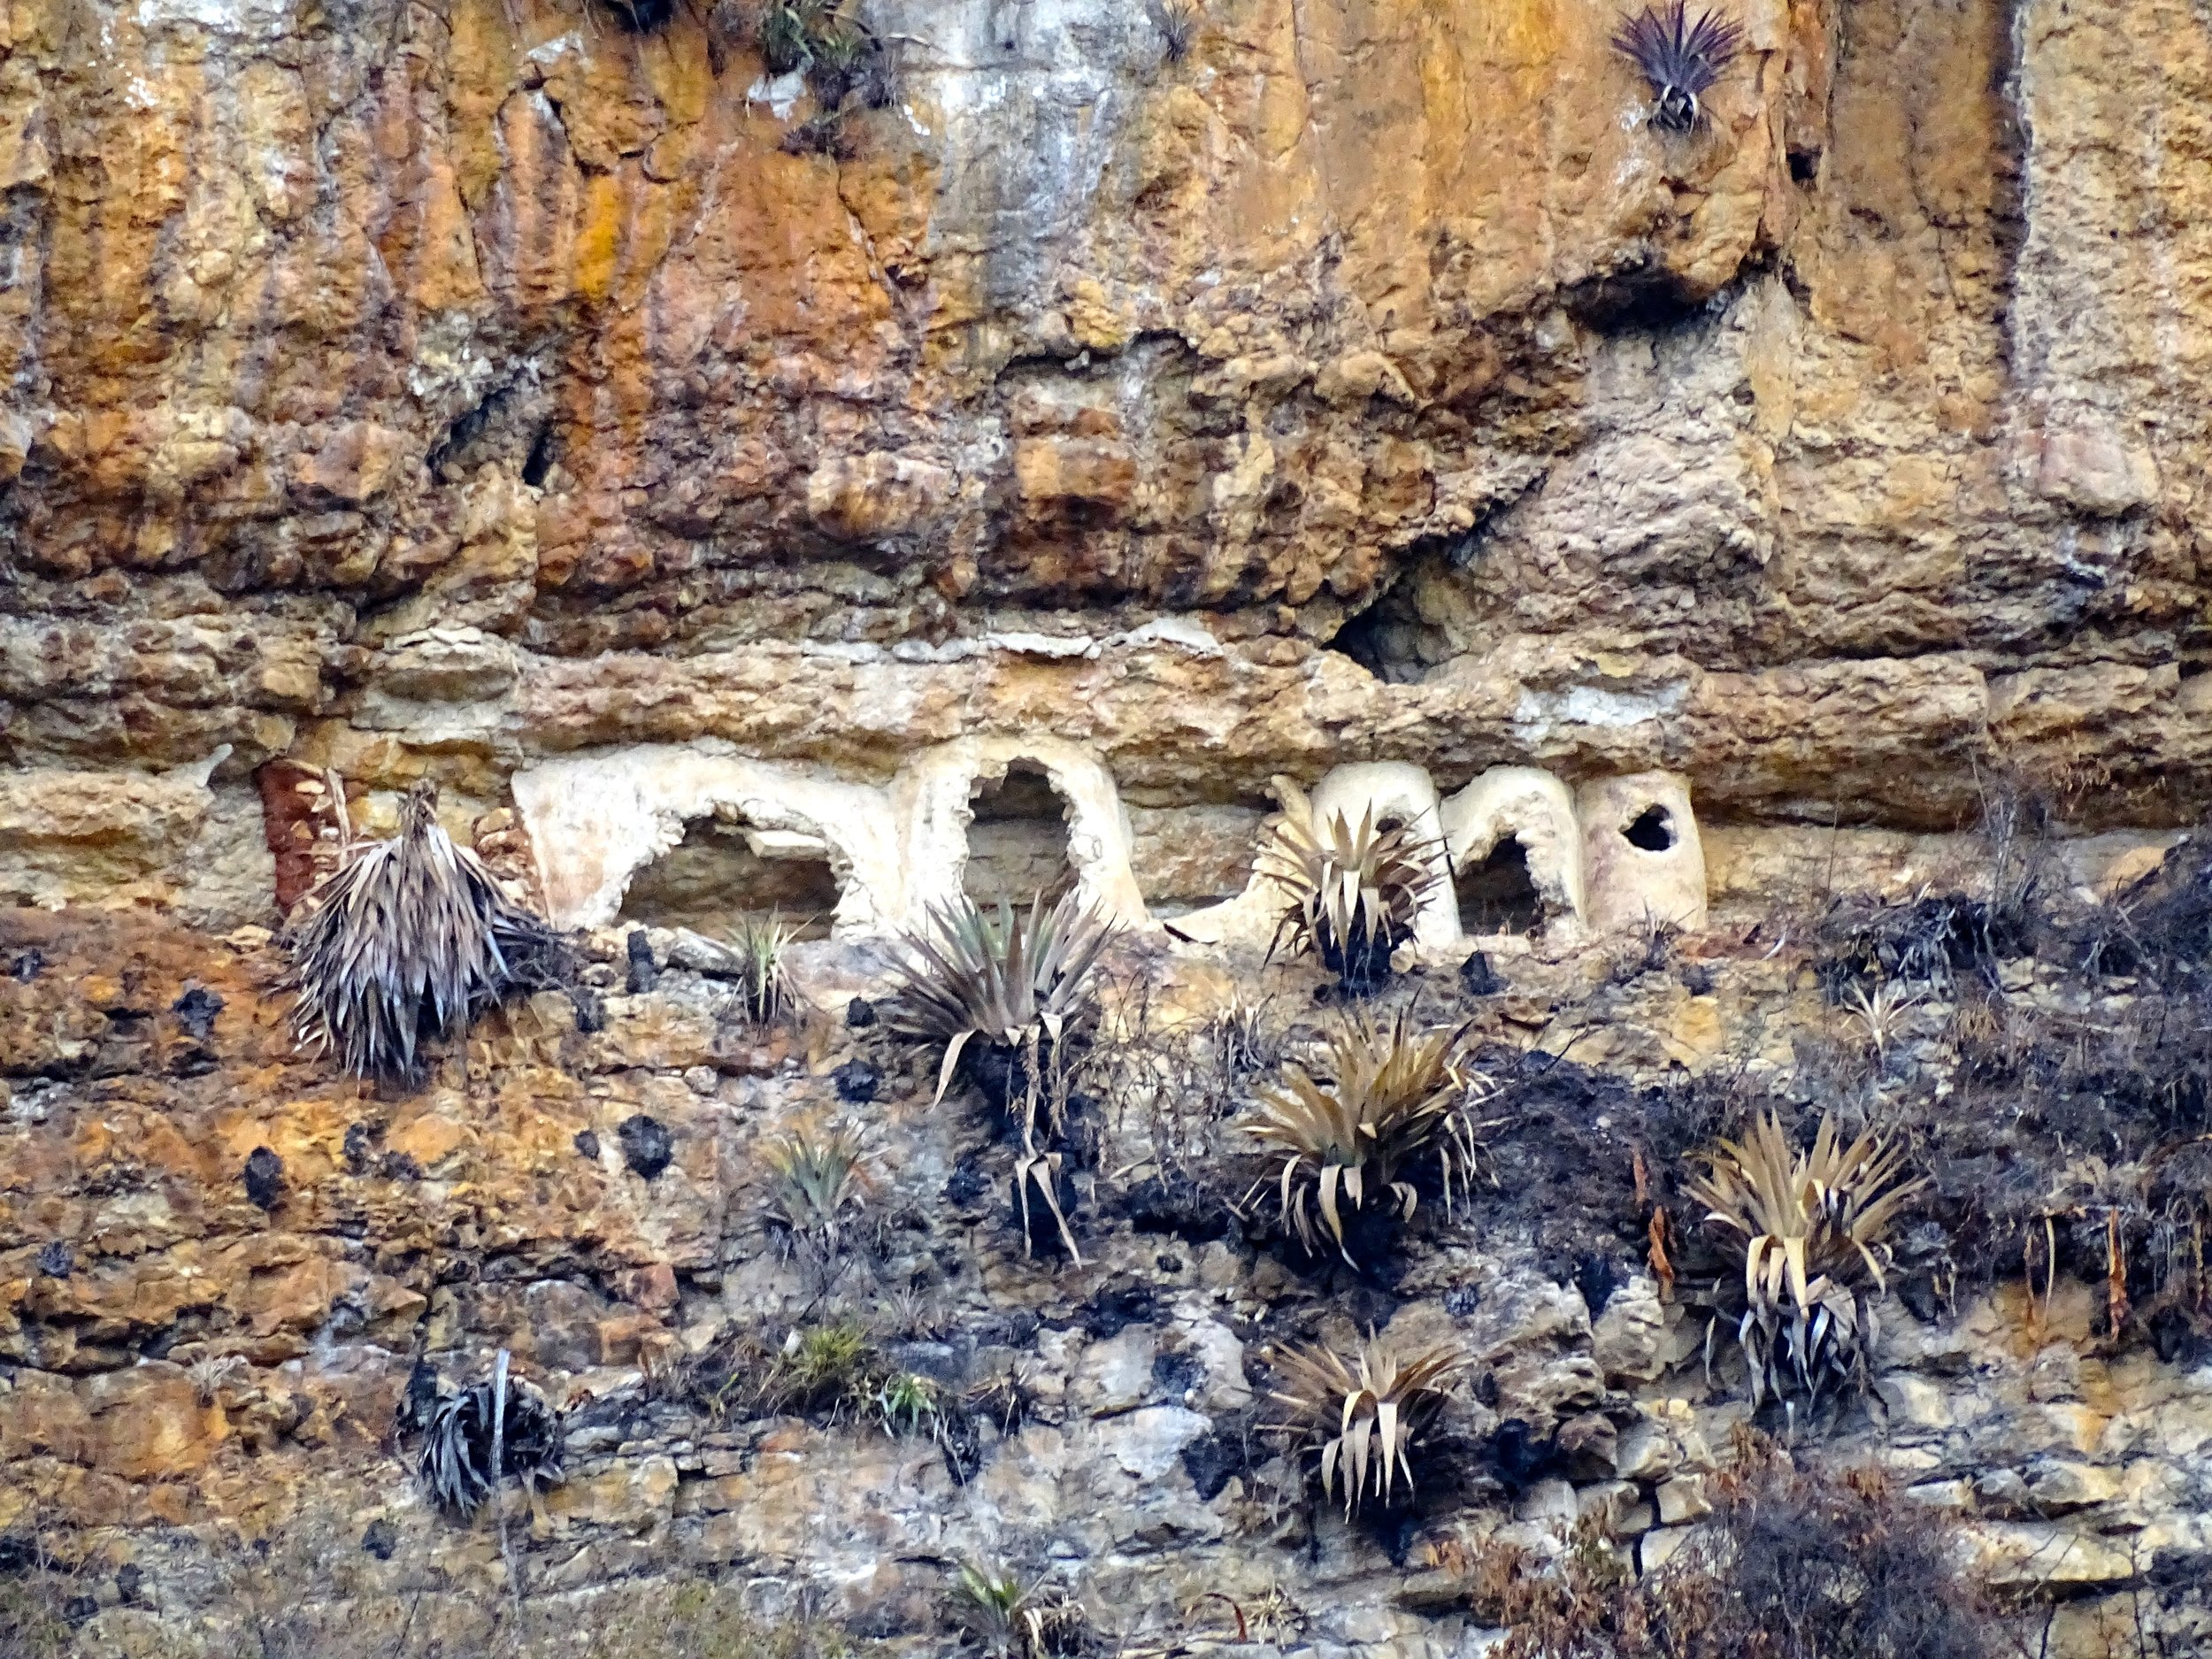 Other cliffs in the nearby region also held sarcophogi.  Most others had been broken open.  Looting in the past, we were told.